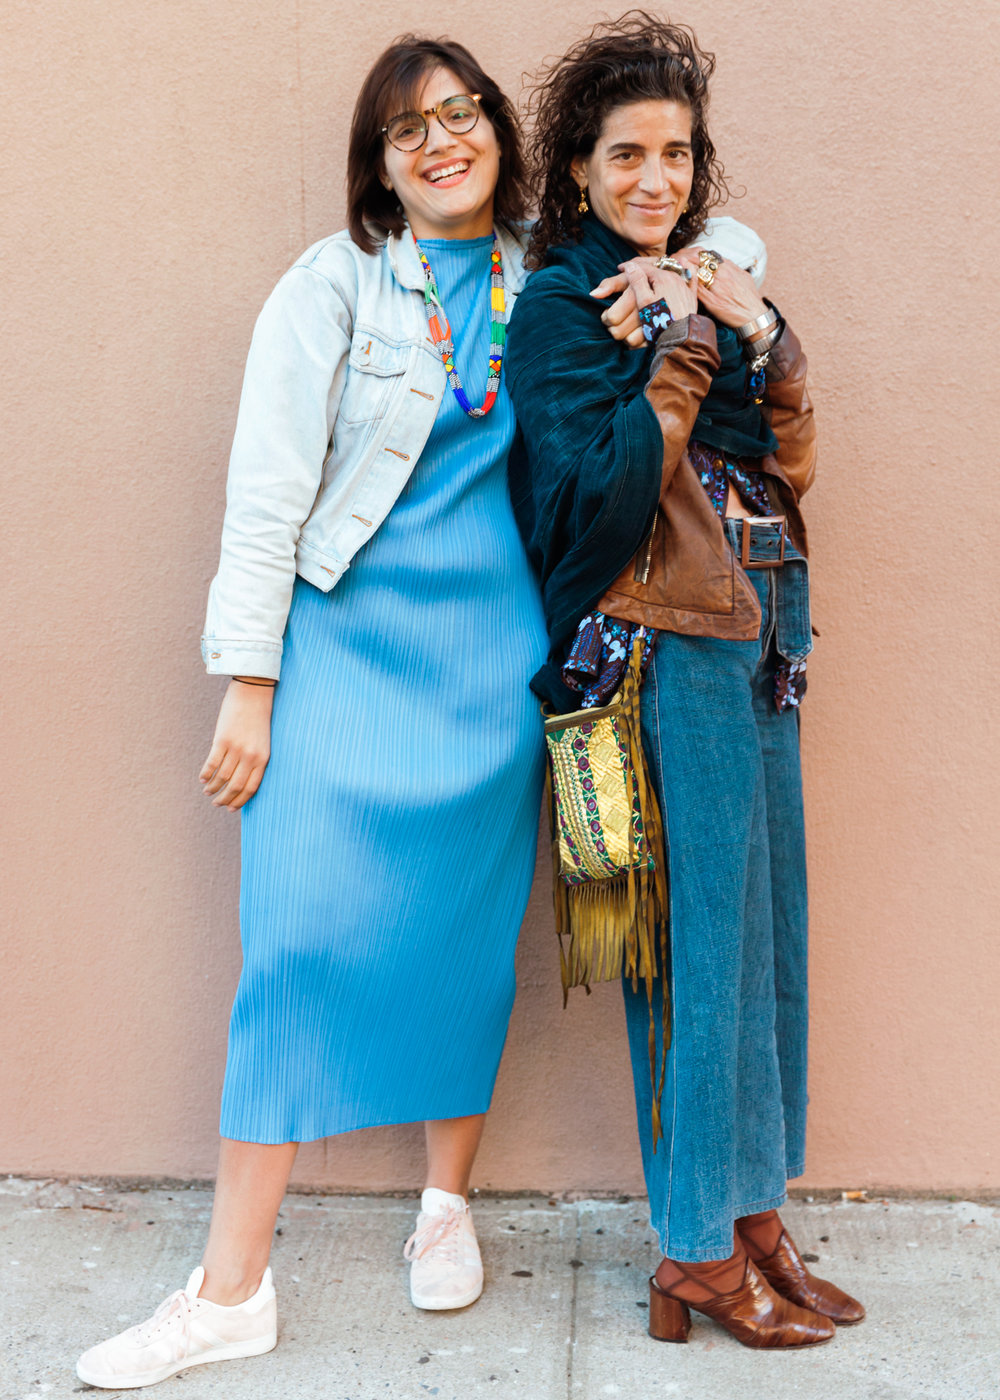 ELISA GOODKIND & LILY MANDELBAUM - Mother and daughter duo behind Style Like U